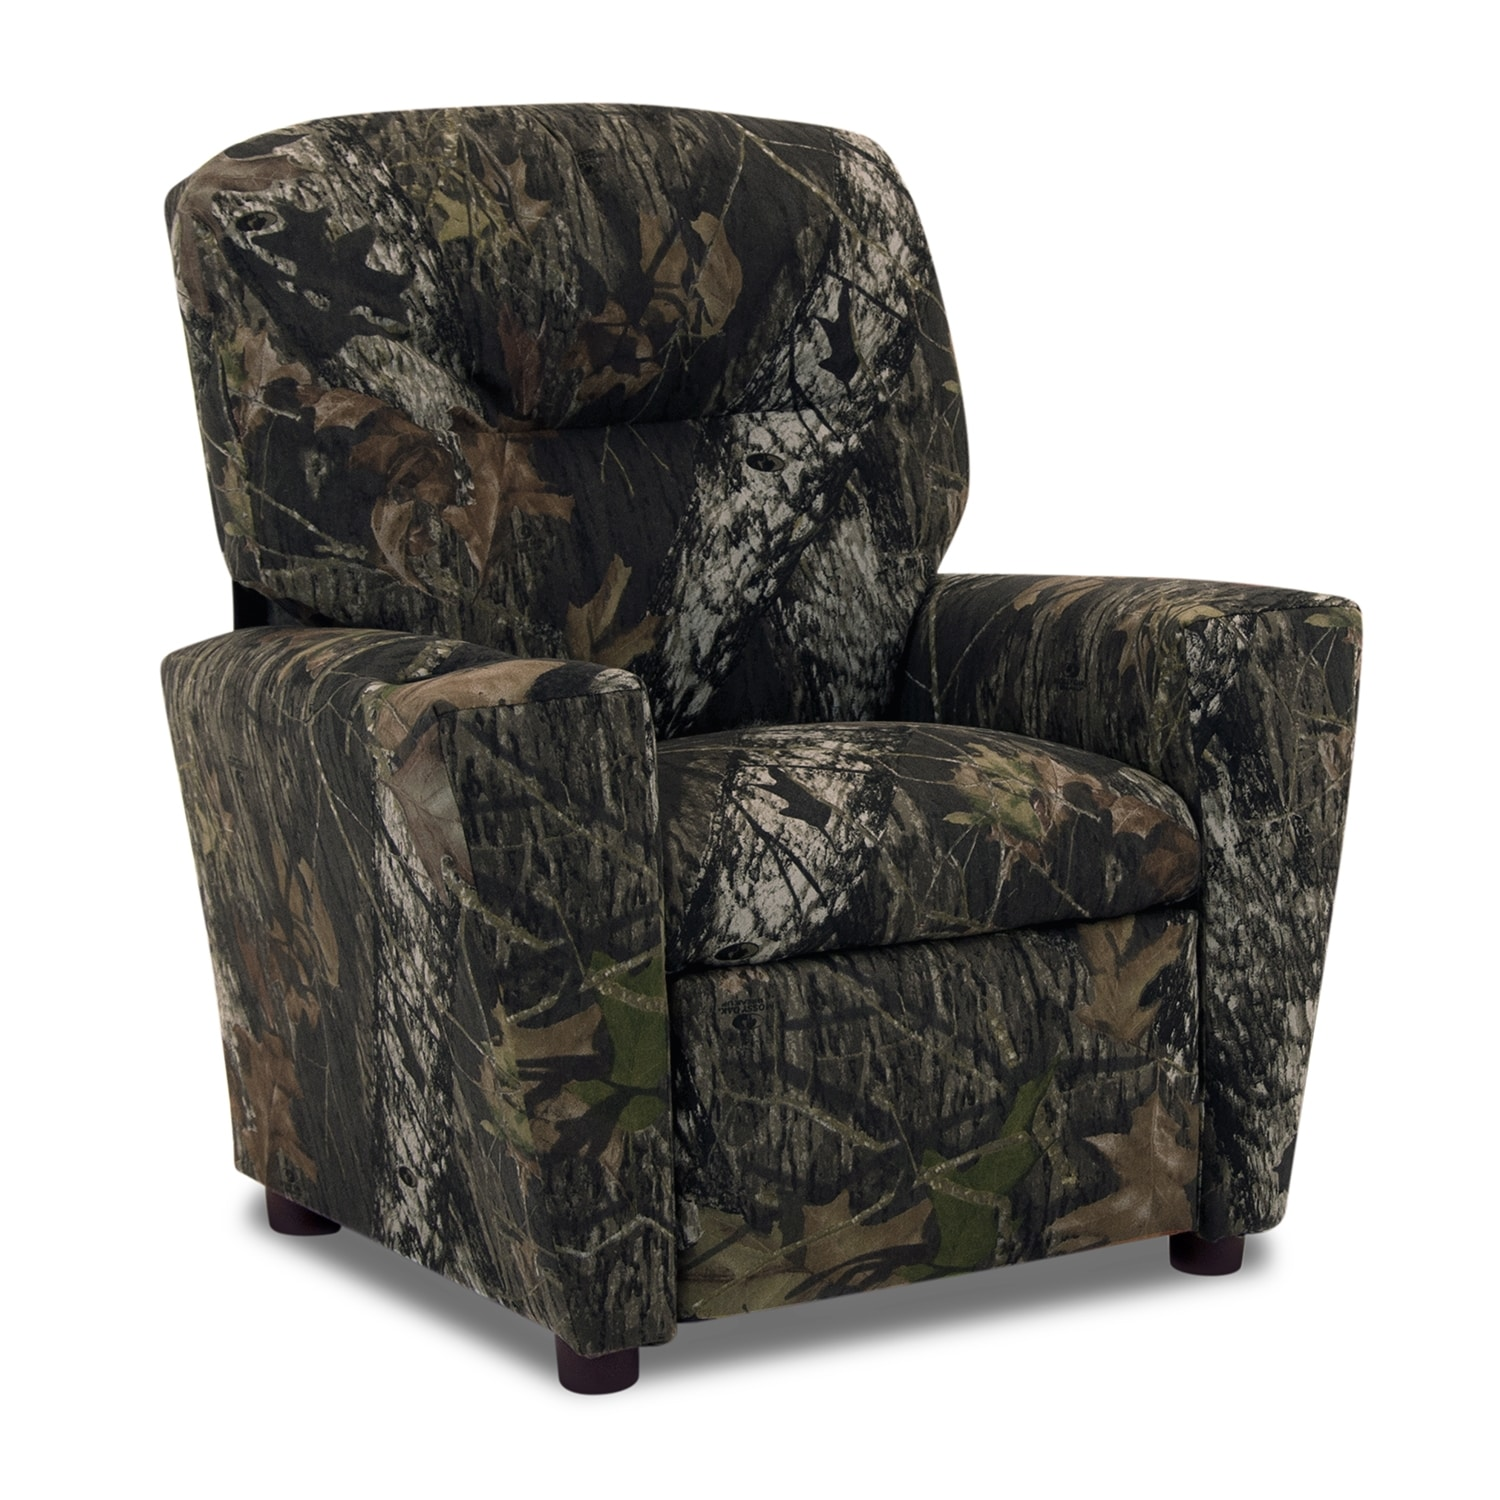 Camo Recliner Chair Mossy Oak Child 39s Recliner Camouflage Value City